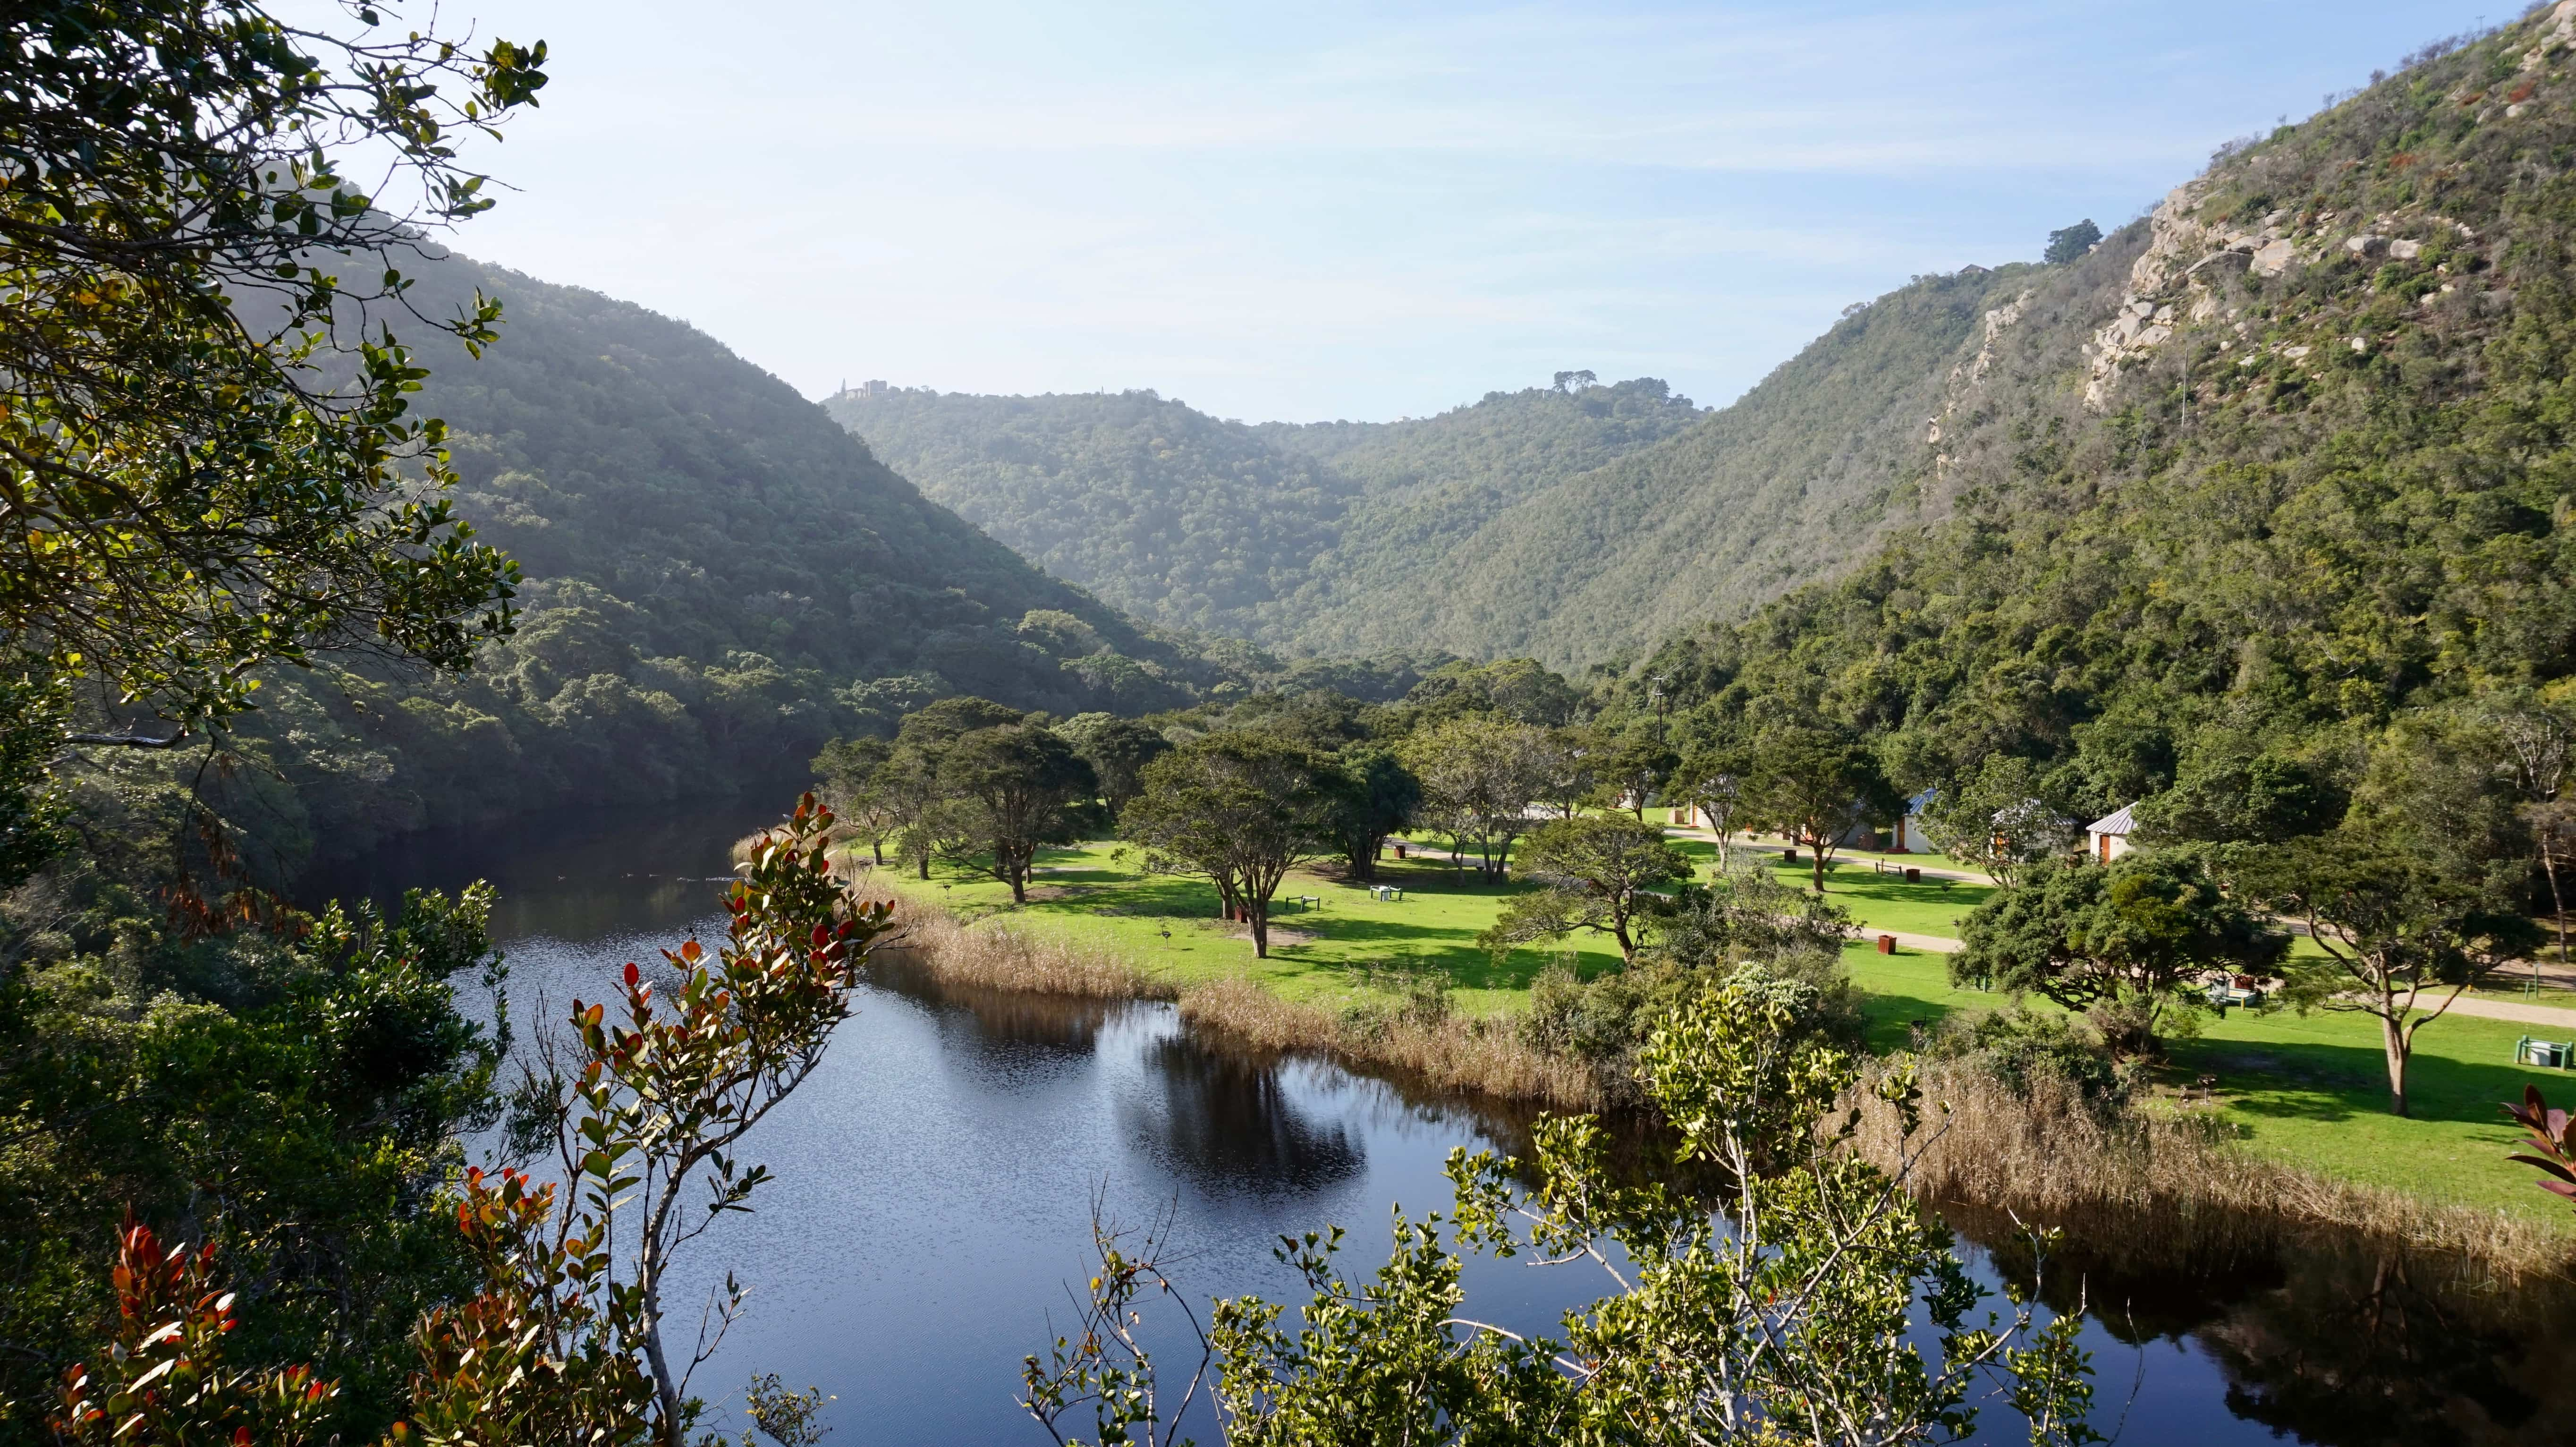 Garden Route National Park, Wilderness section, view over the river